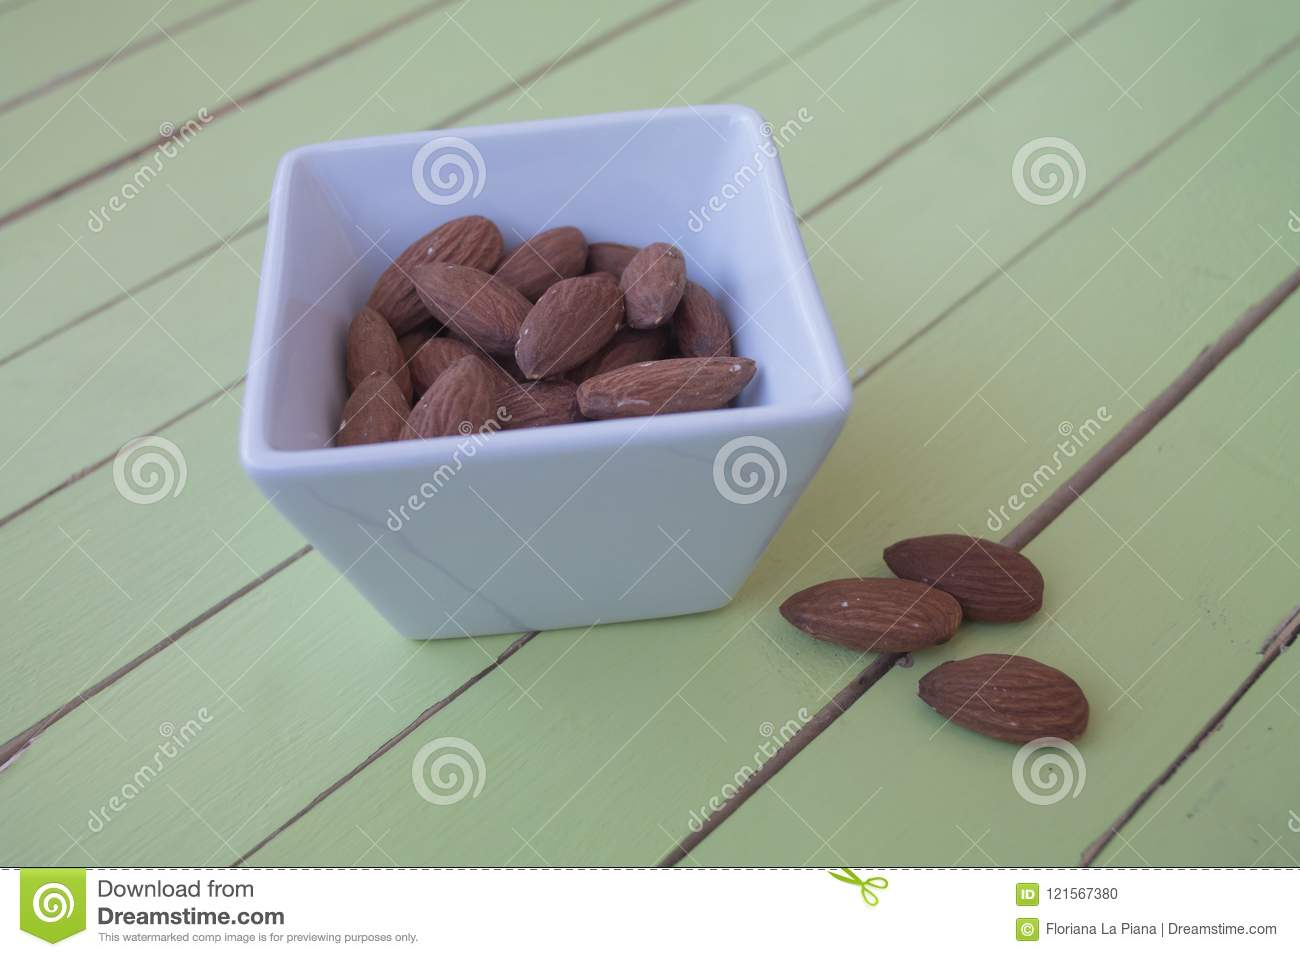 Sweet almonds in a white bowl on green wood